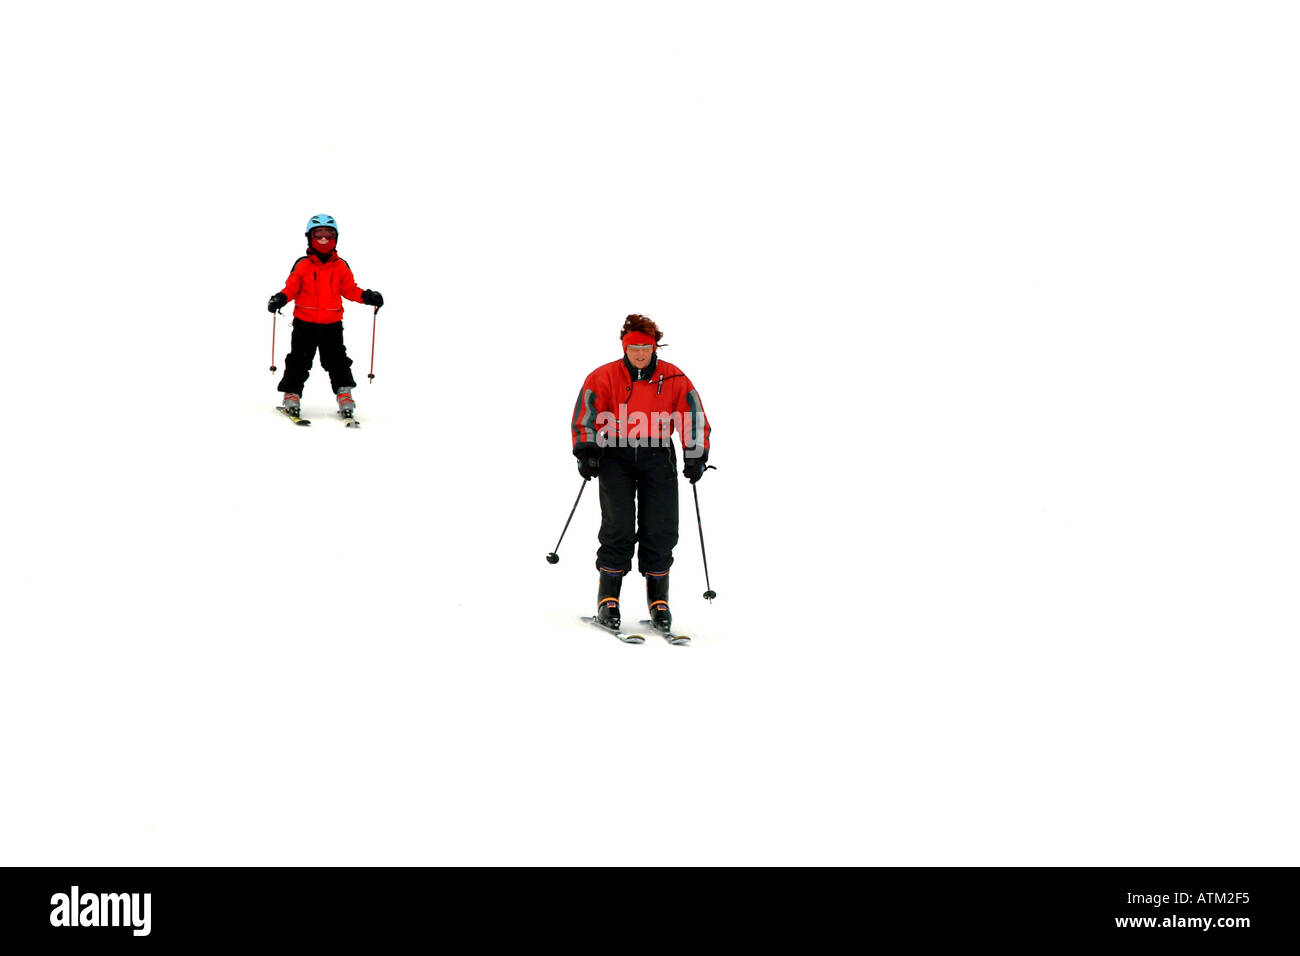 Skiers snowboarders skiing snowboarding on the pistes of the Schmittenhohe mountain above Zell am See  - Stock Image